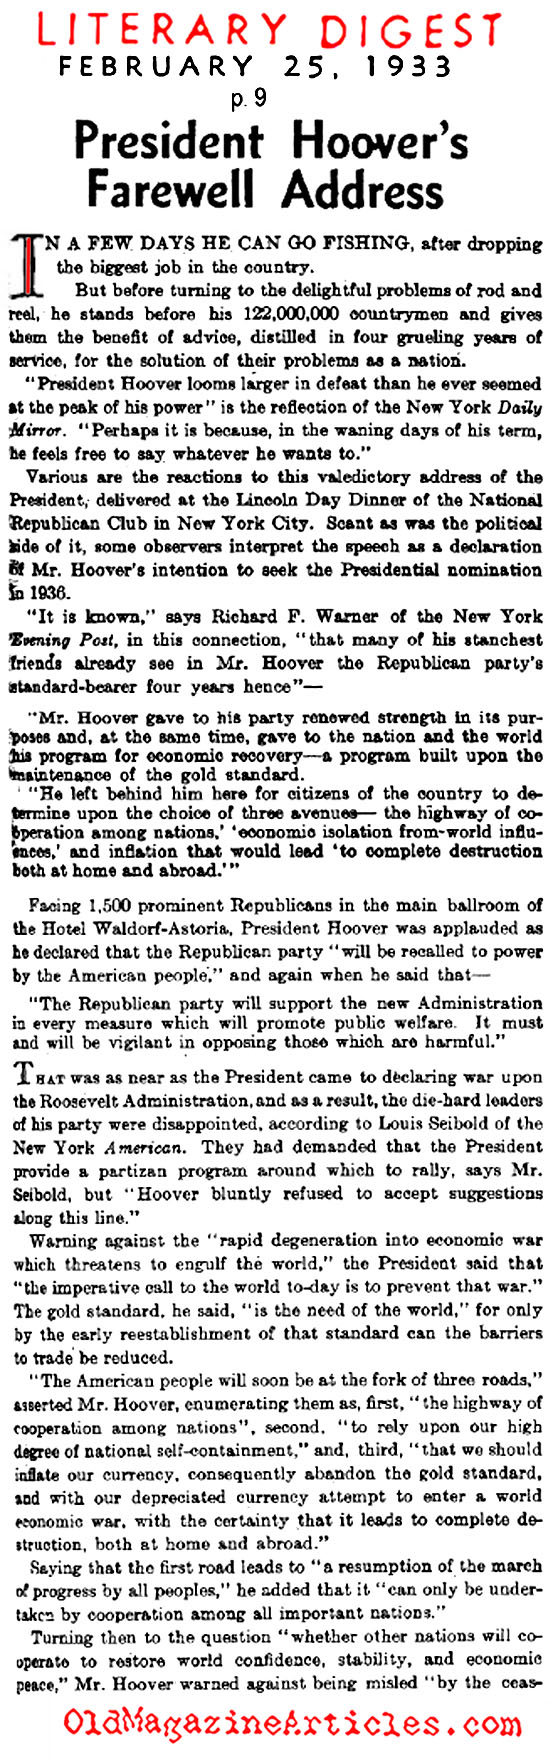 President Hoover's Farewell Address (Literary Digest, 1933)